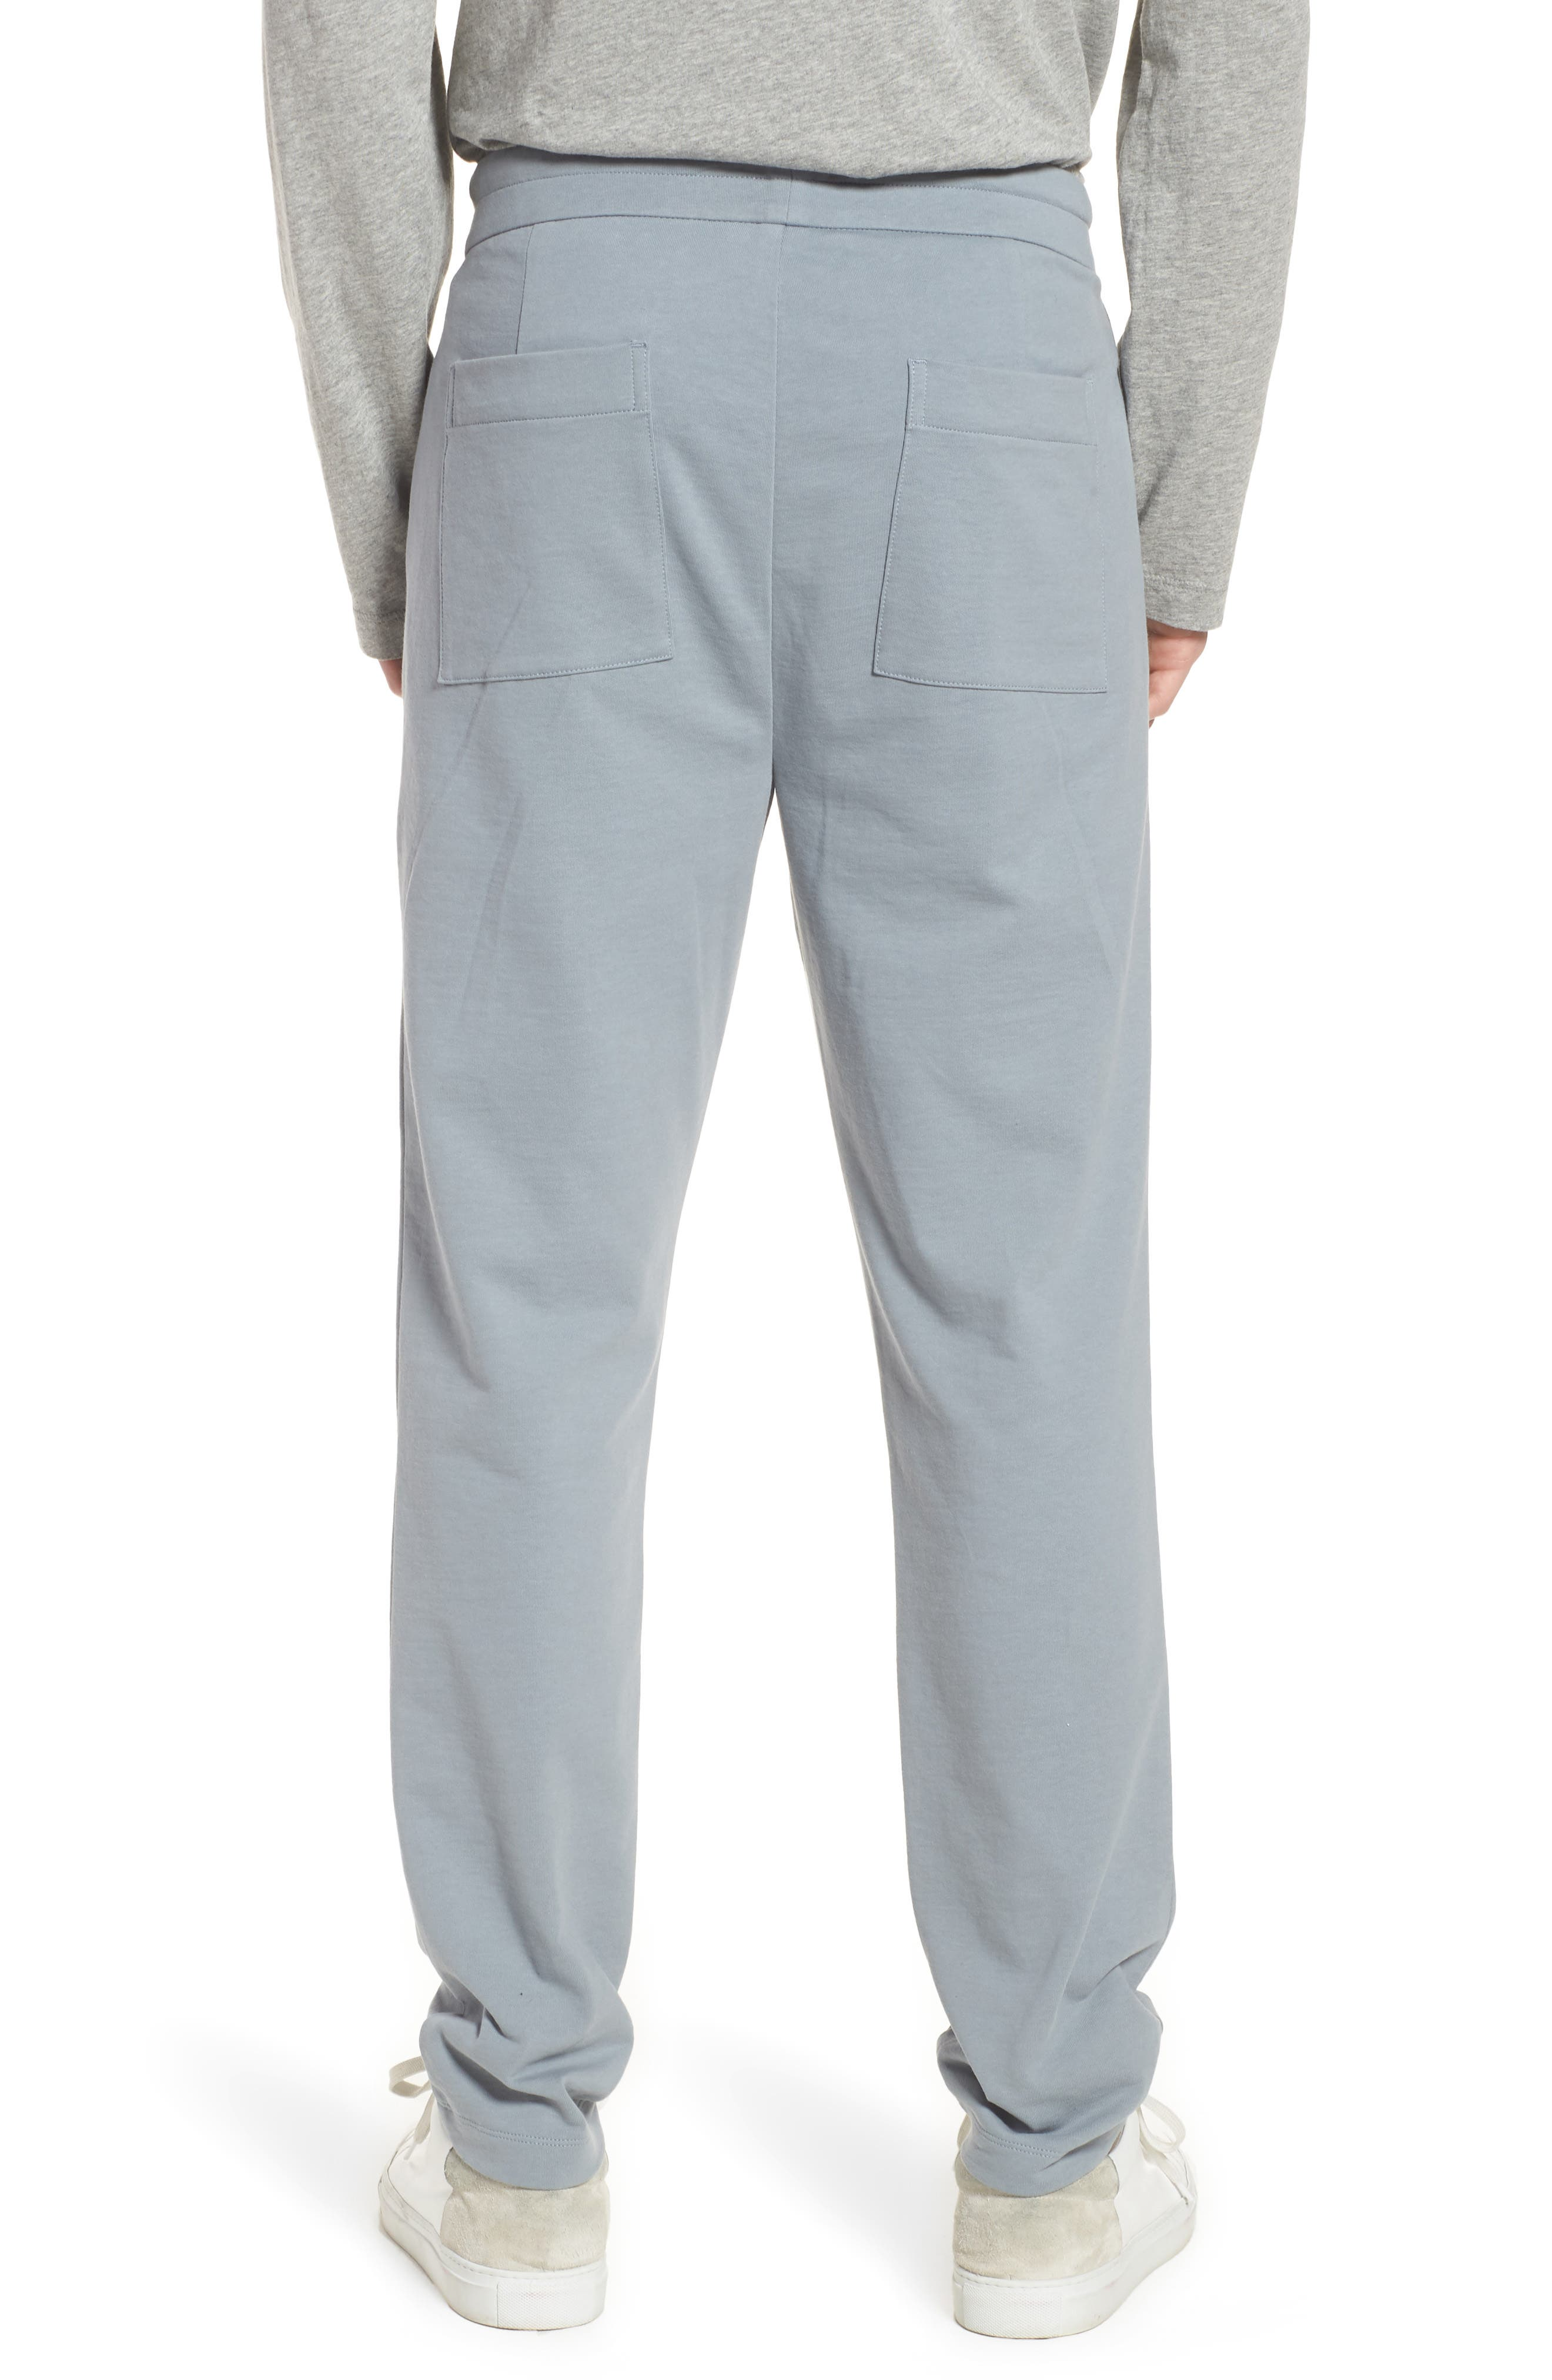 Cotton Pants,                             Alternate thumbnail 2, color,                             Grey Sky/ Light Grey